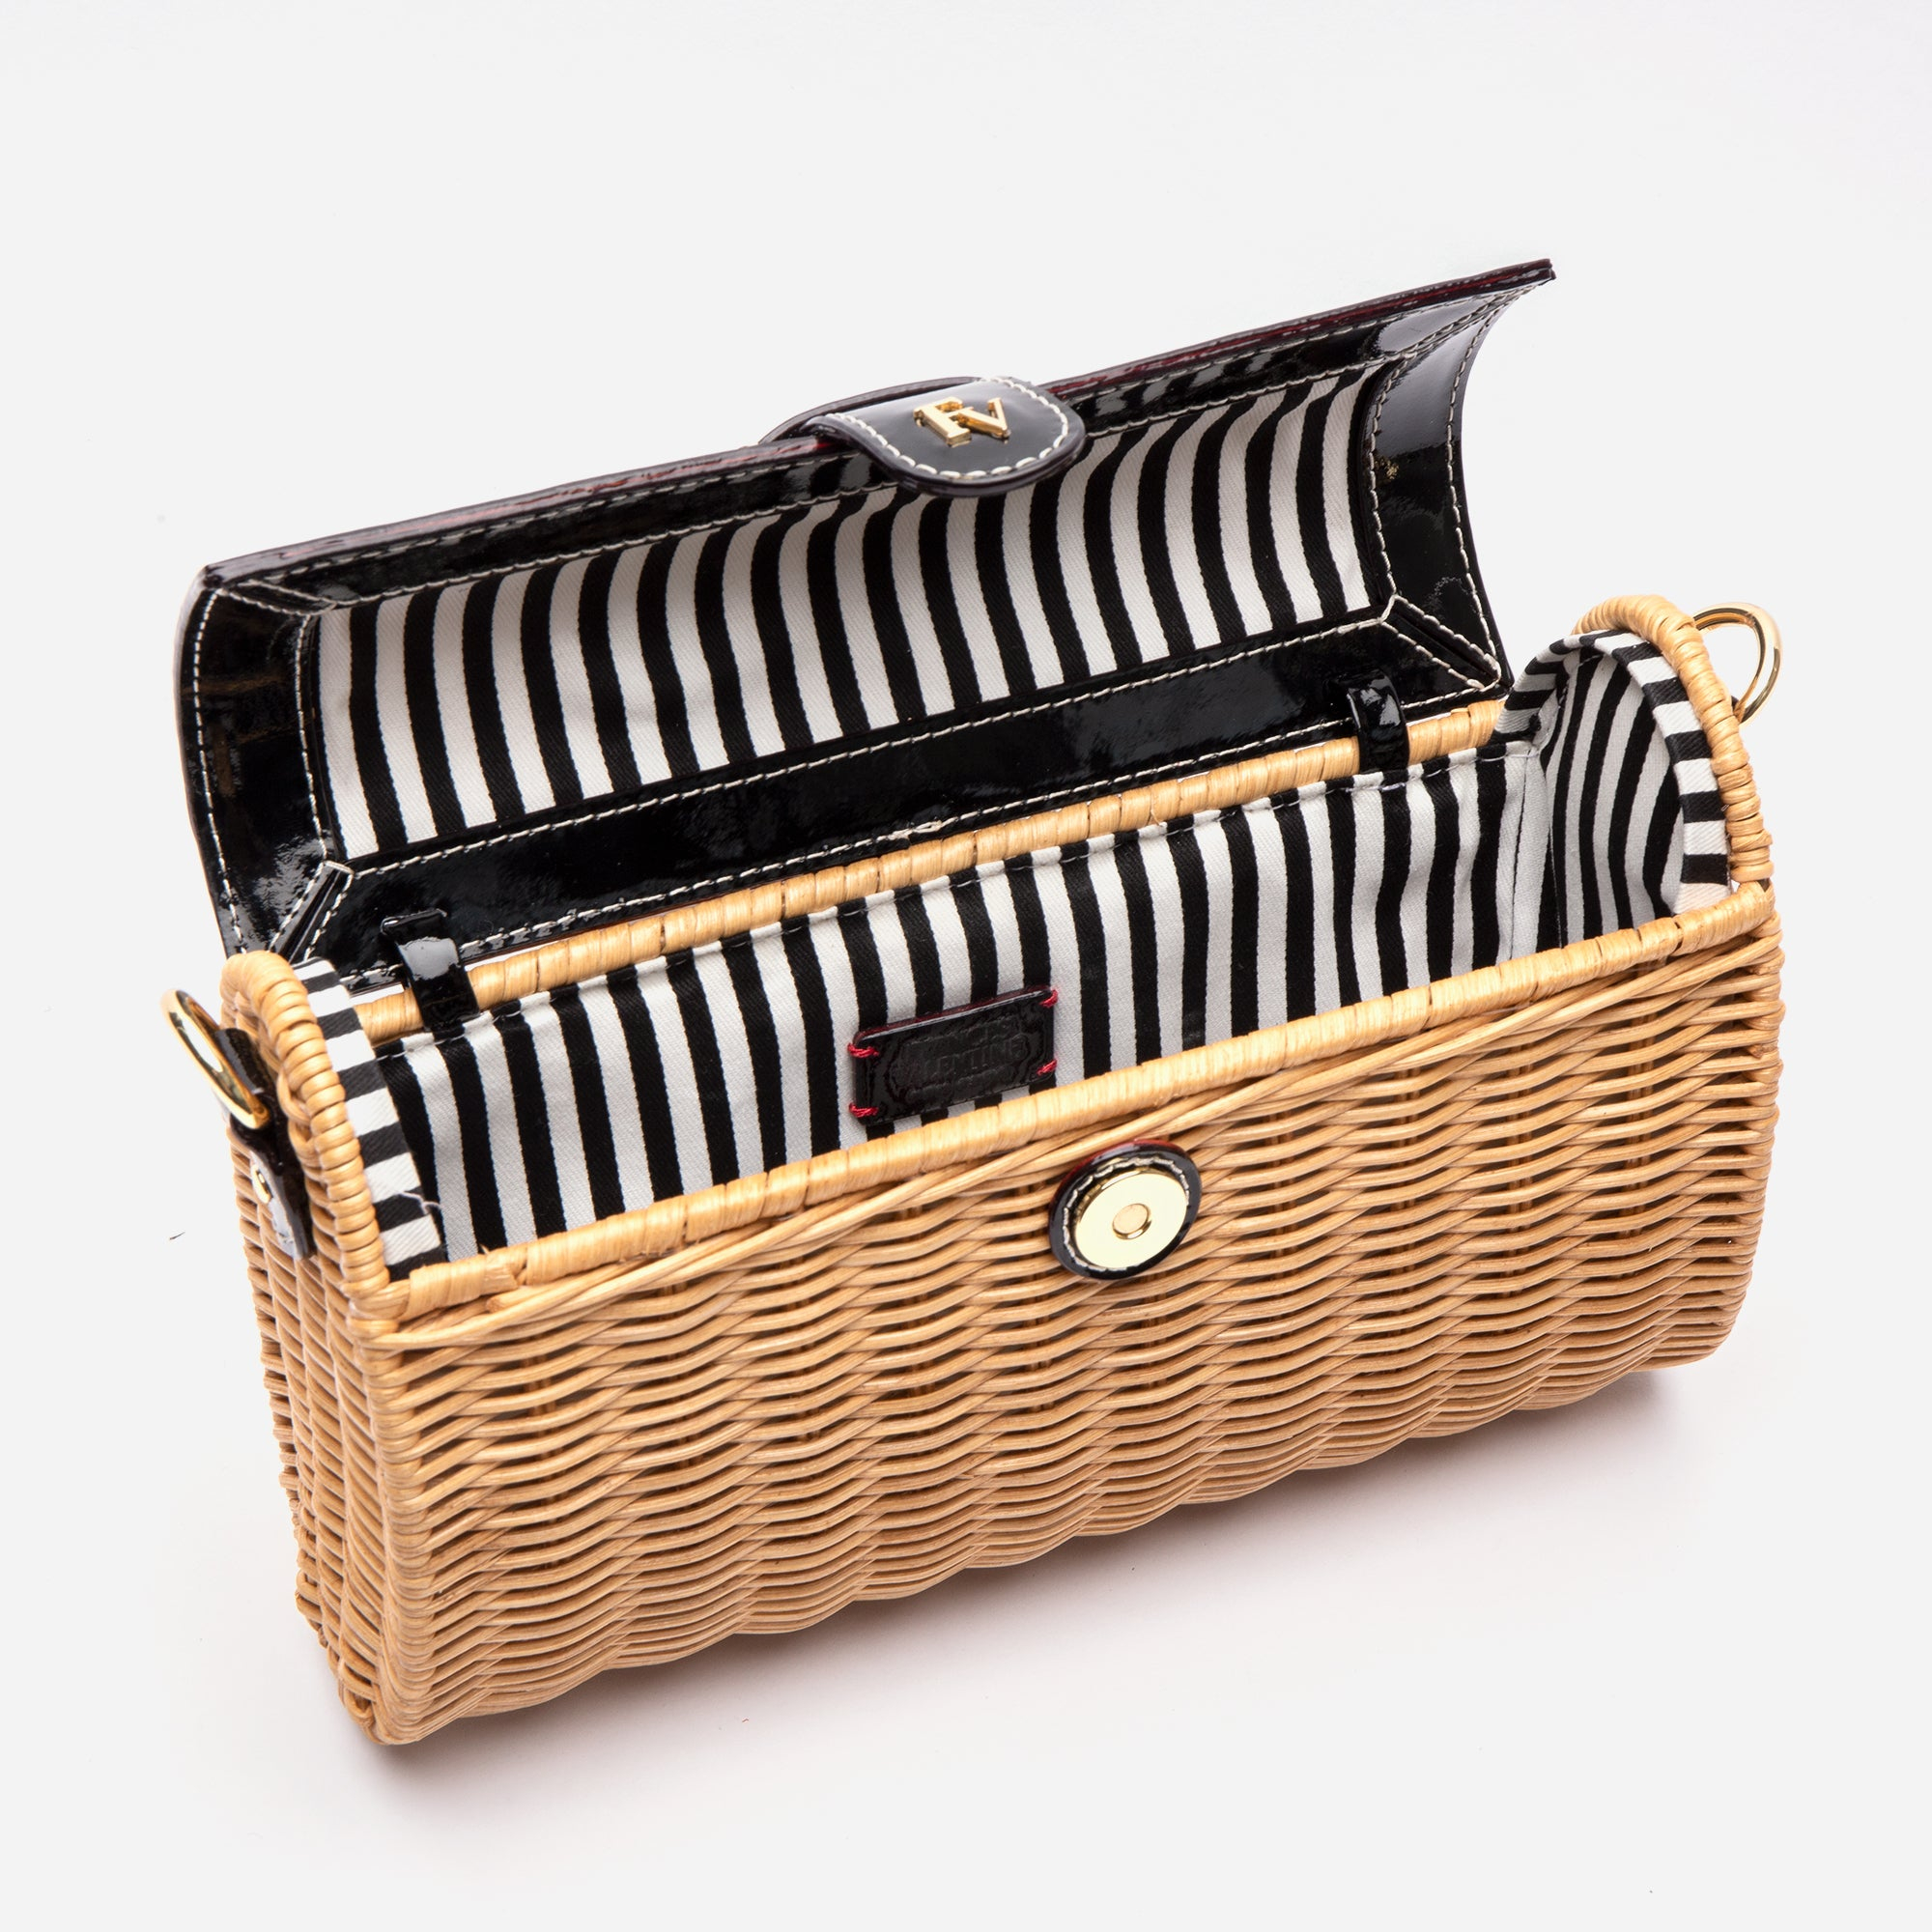 Betsy Wicker Basket Bag Black Patent